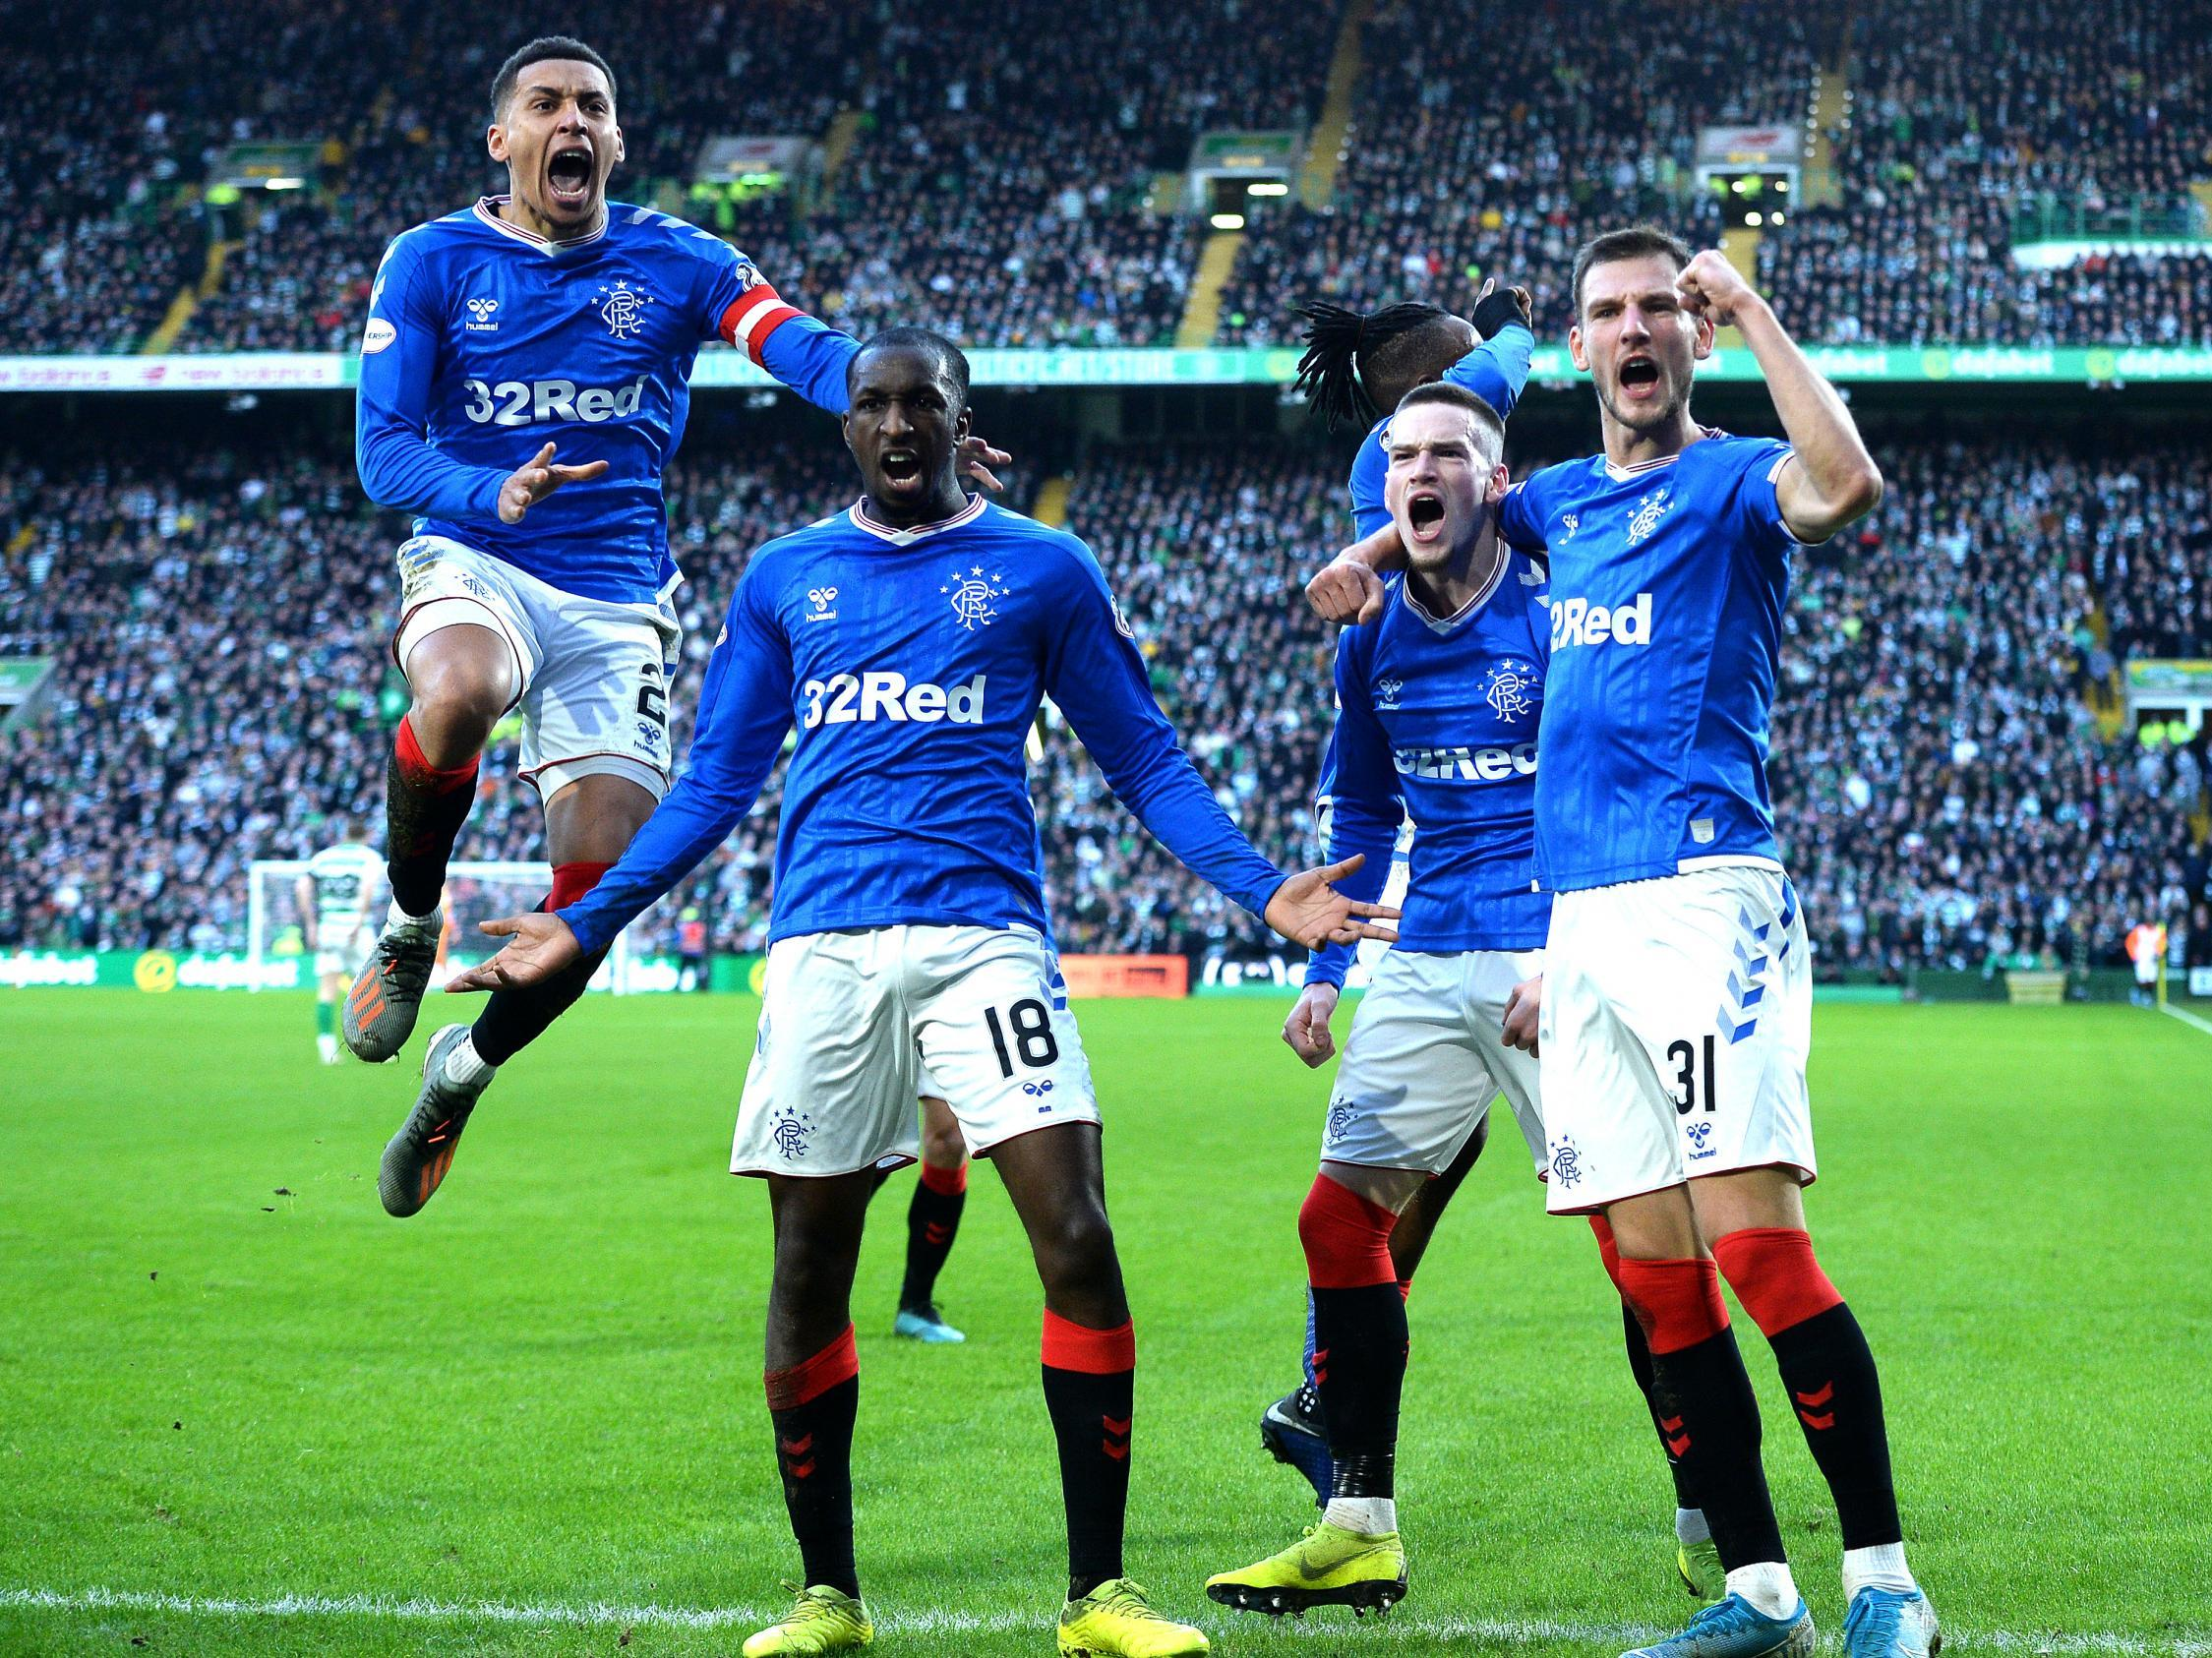 Rangers Vs Celtic